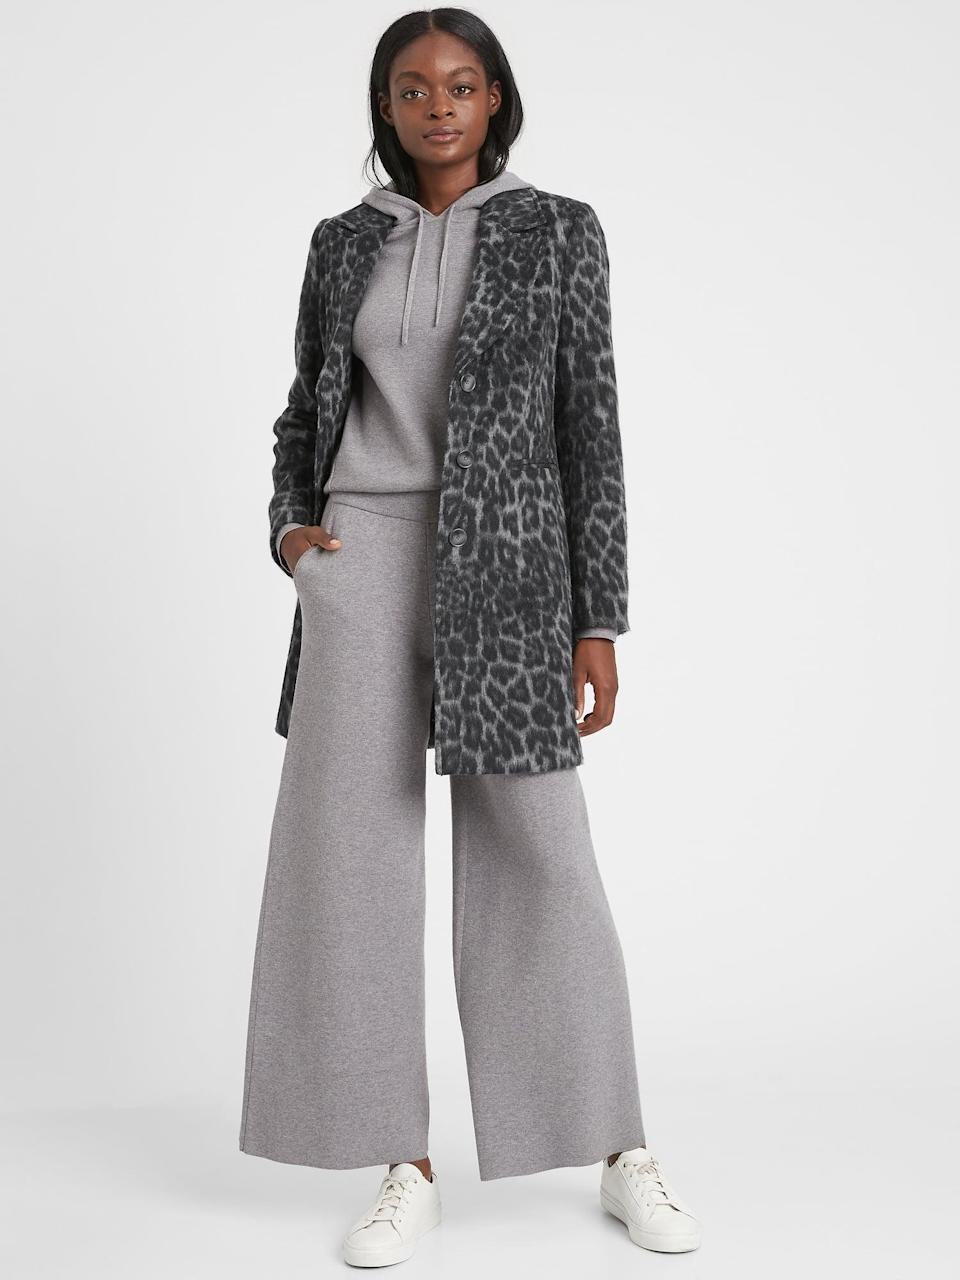 <p>This <span>Banana Republic Leopard Top Coat</span> ($179, originally $299) is a best seller that they've brought back this season. I was thrilled to learn it was primarily made of recycled wool and polyester!</p>